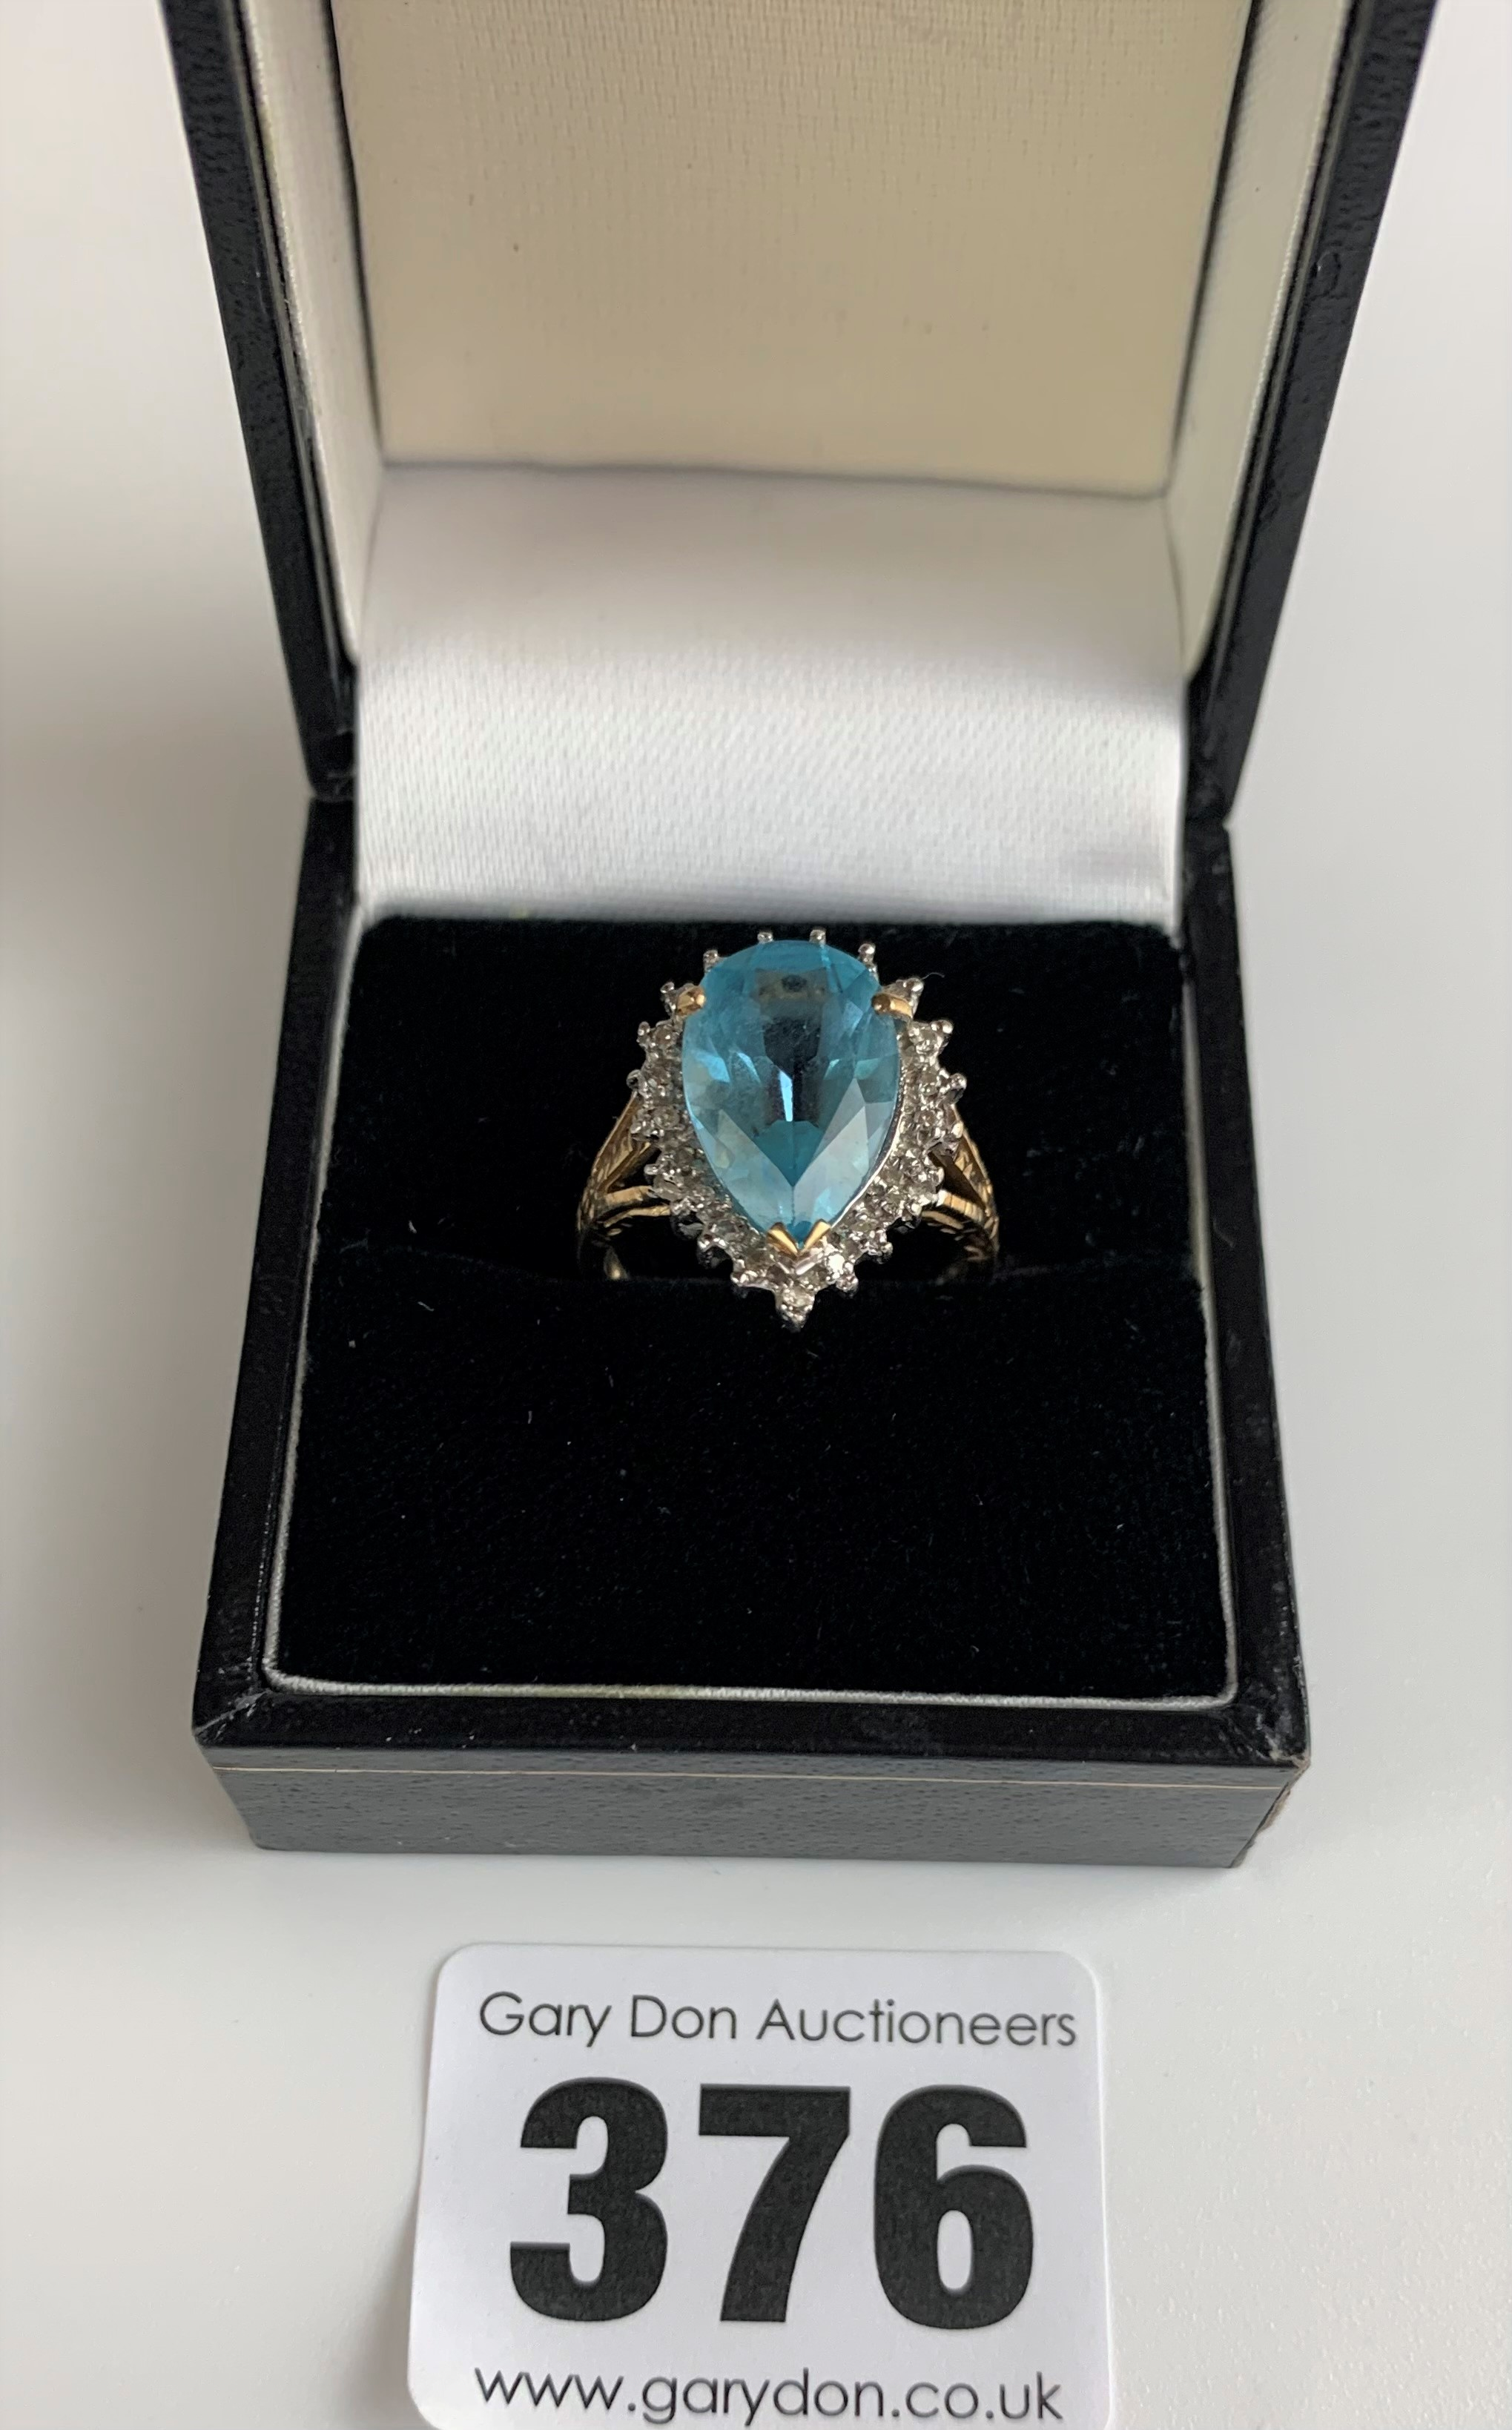 9k gold ring with blue heart shaped stone, size L, w: 3.5 gms